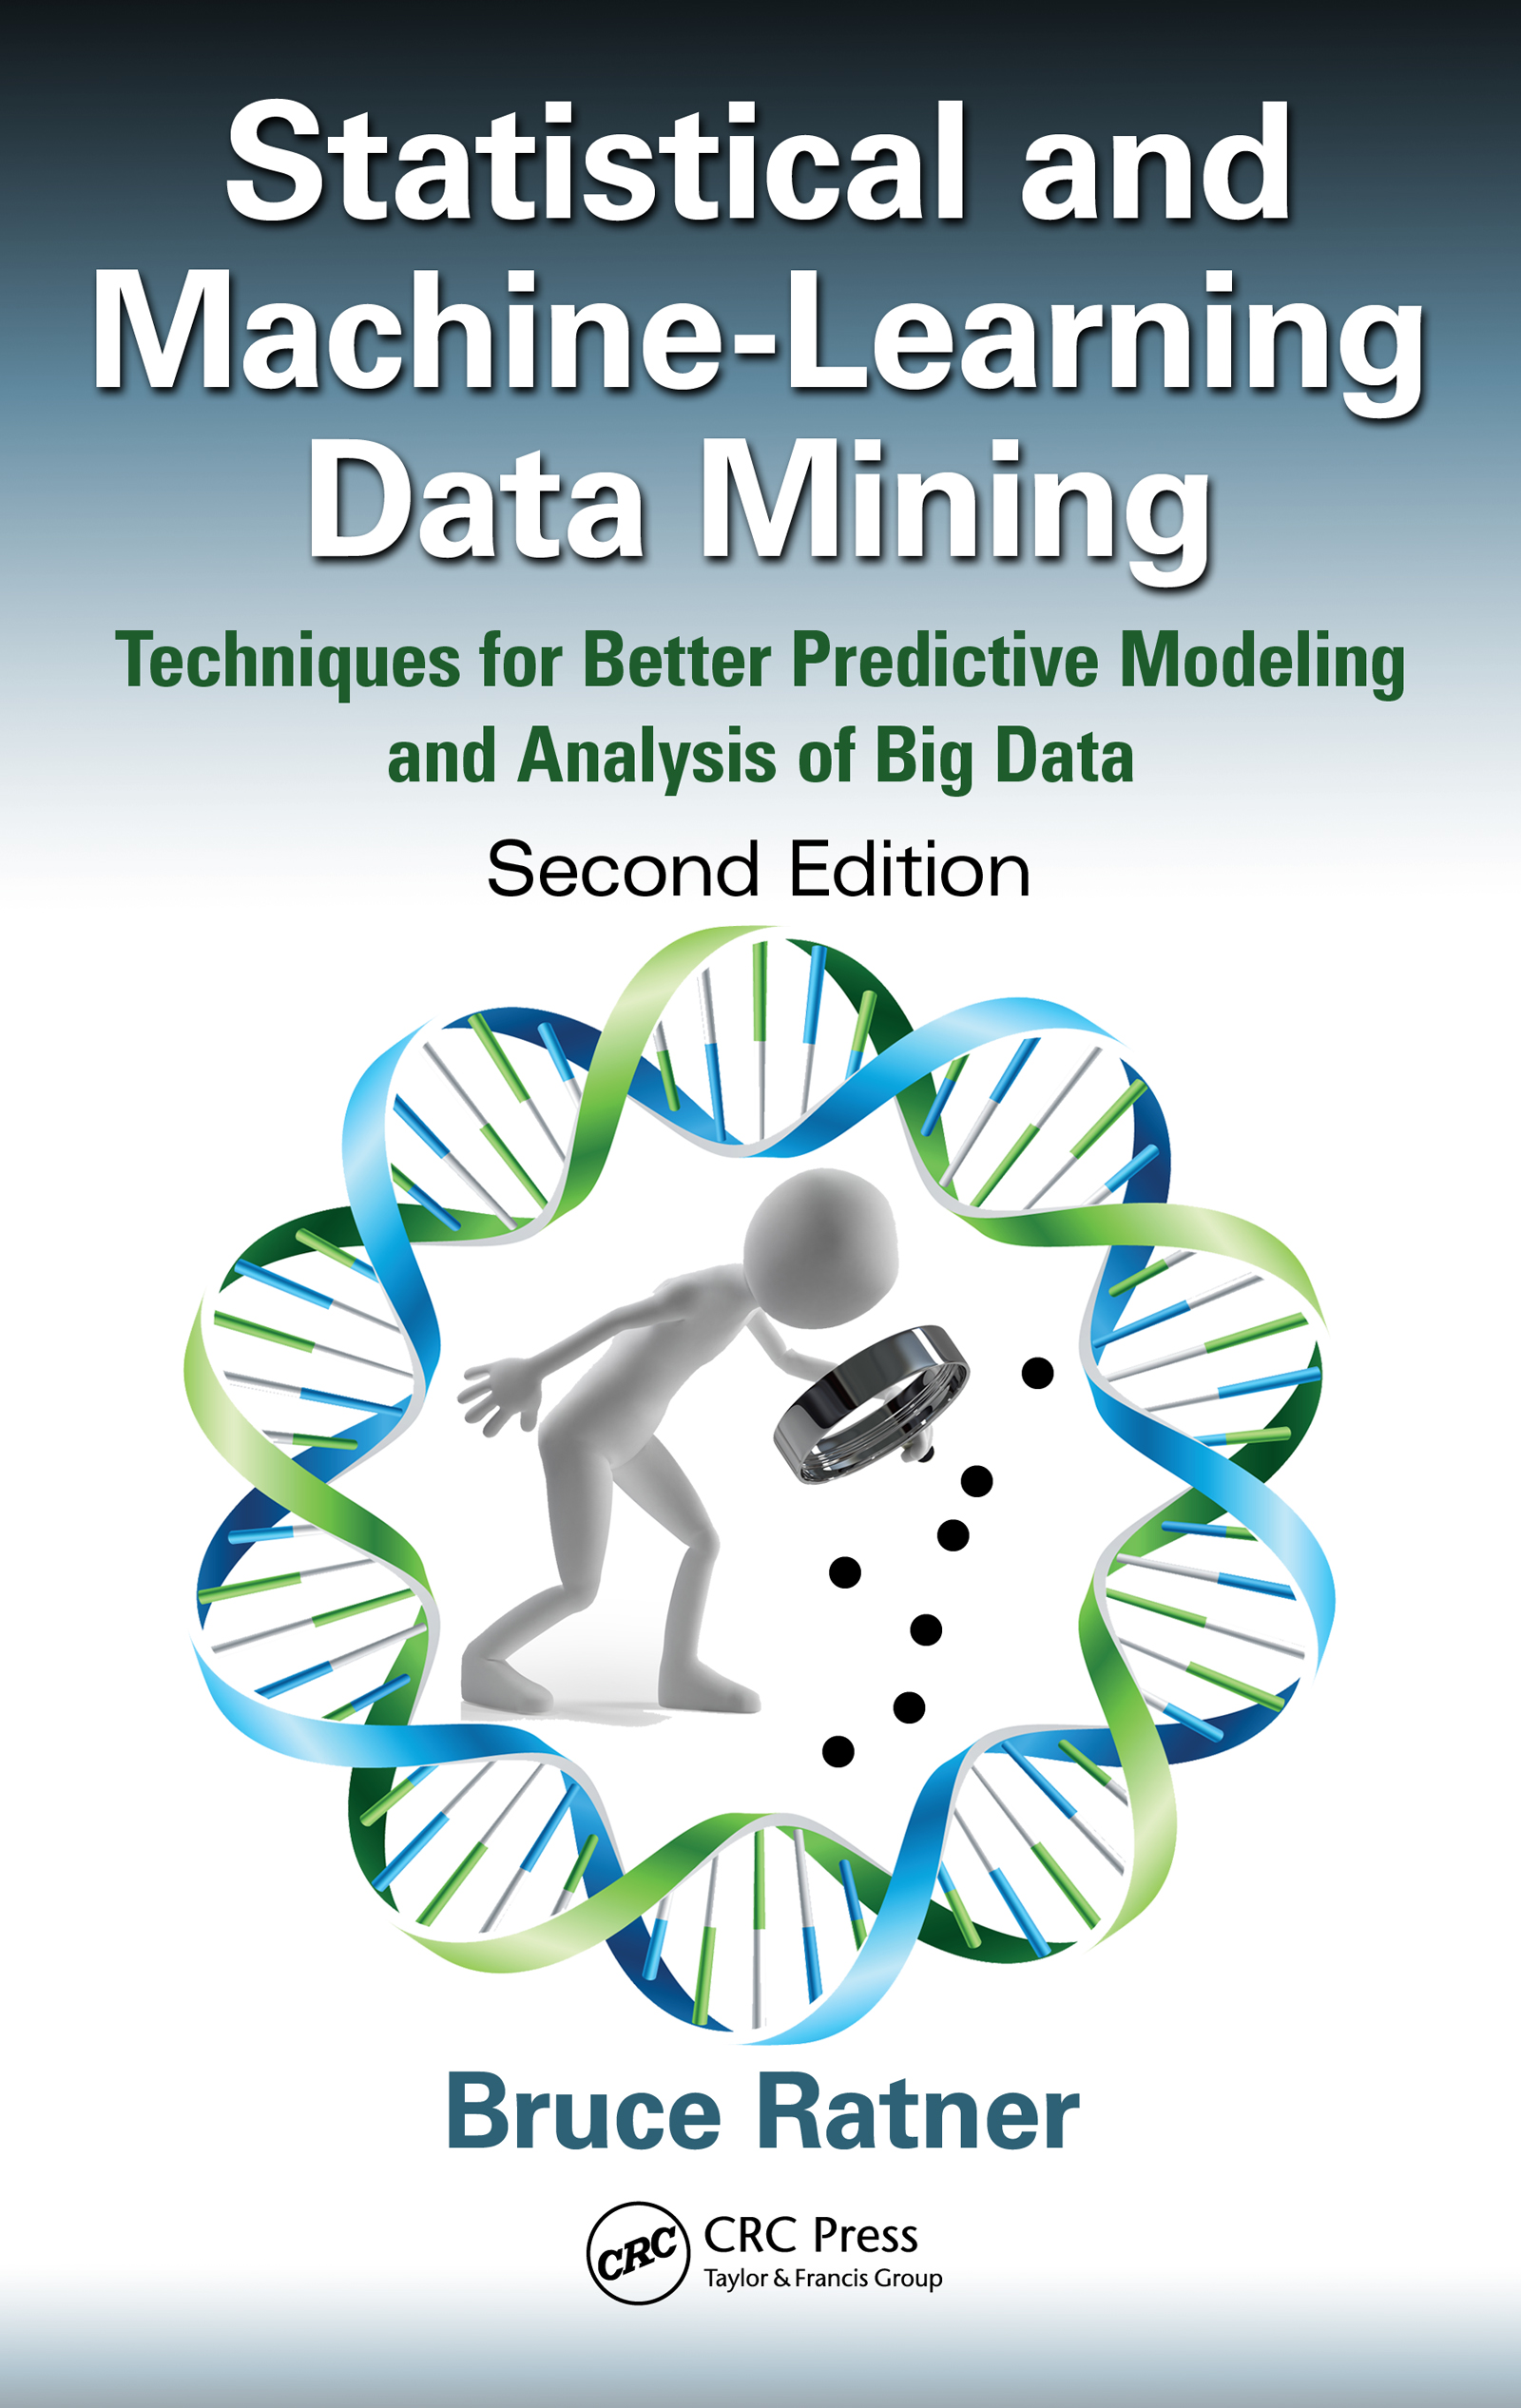 Download Ebook Statistical and Machine-Learning Data Mining (2nd ed.) by Bruce Ratner Pdf